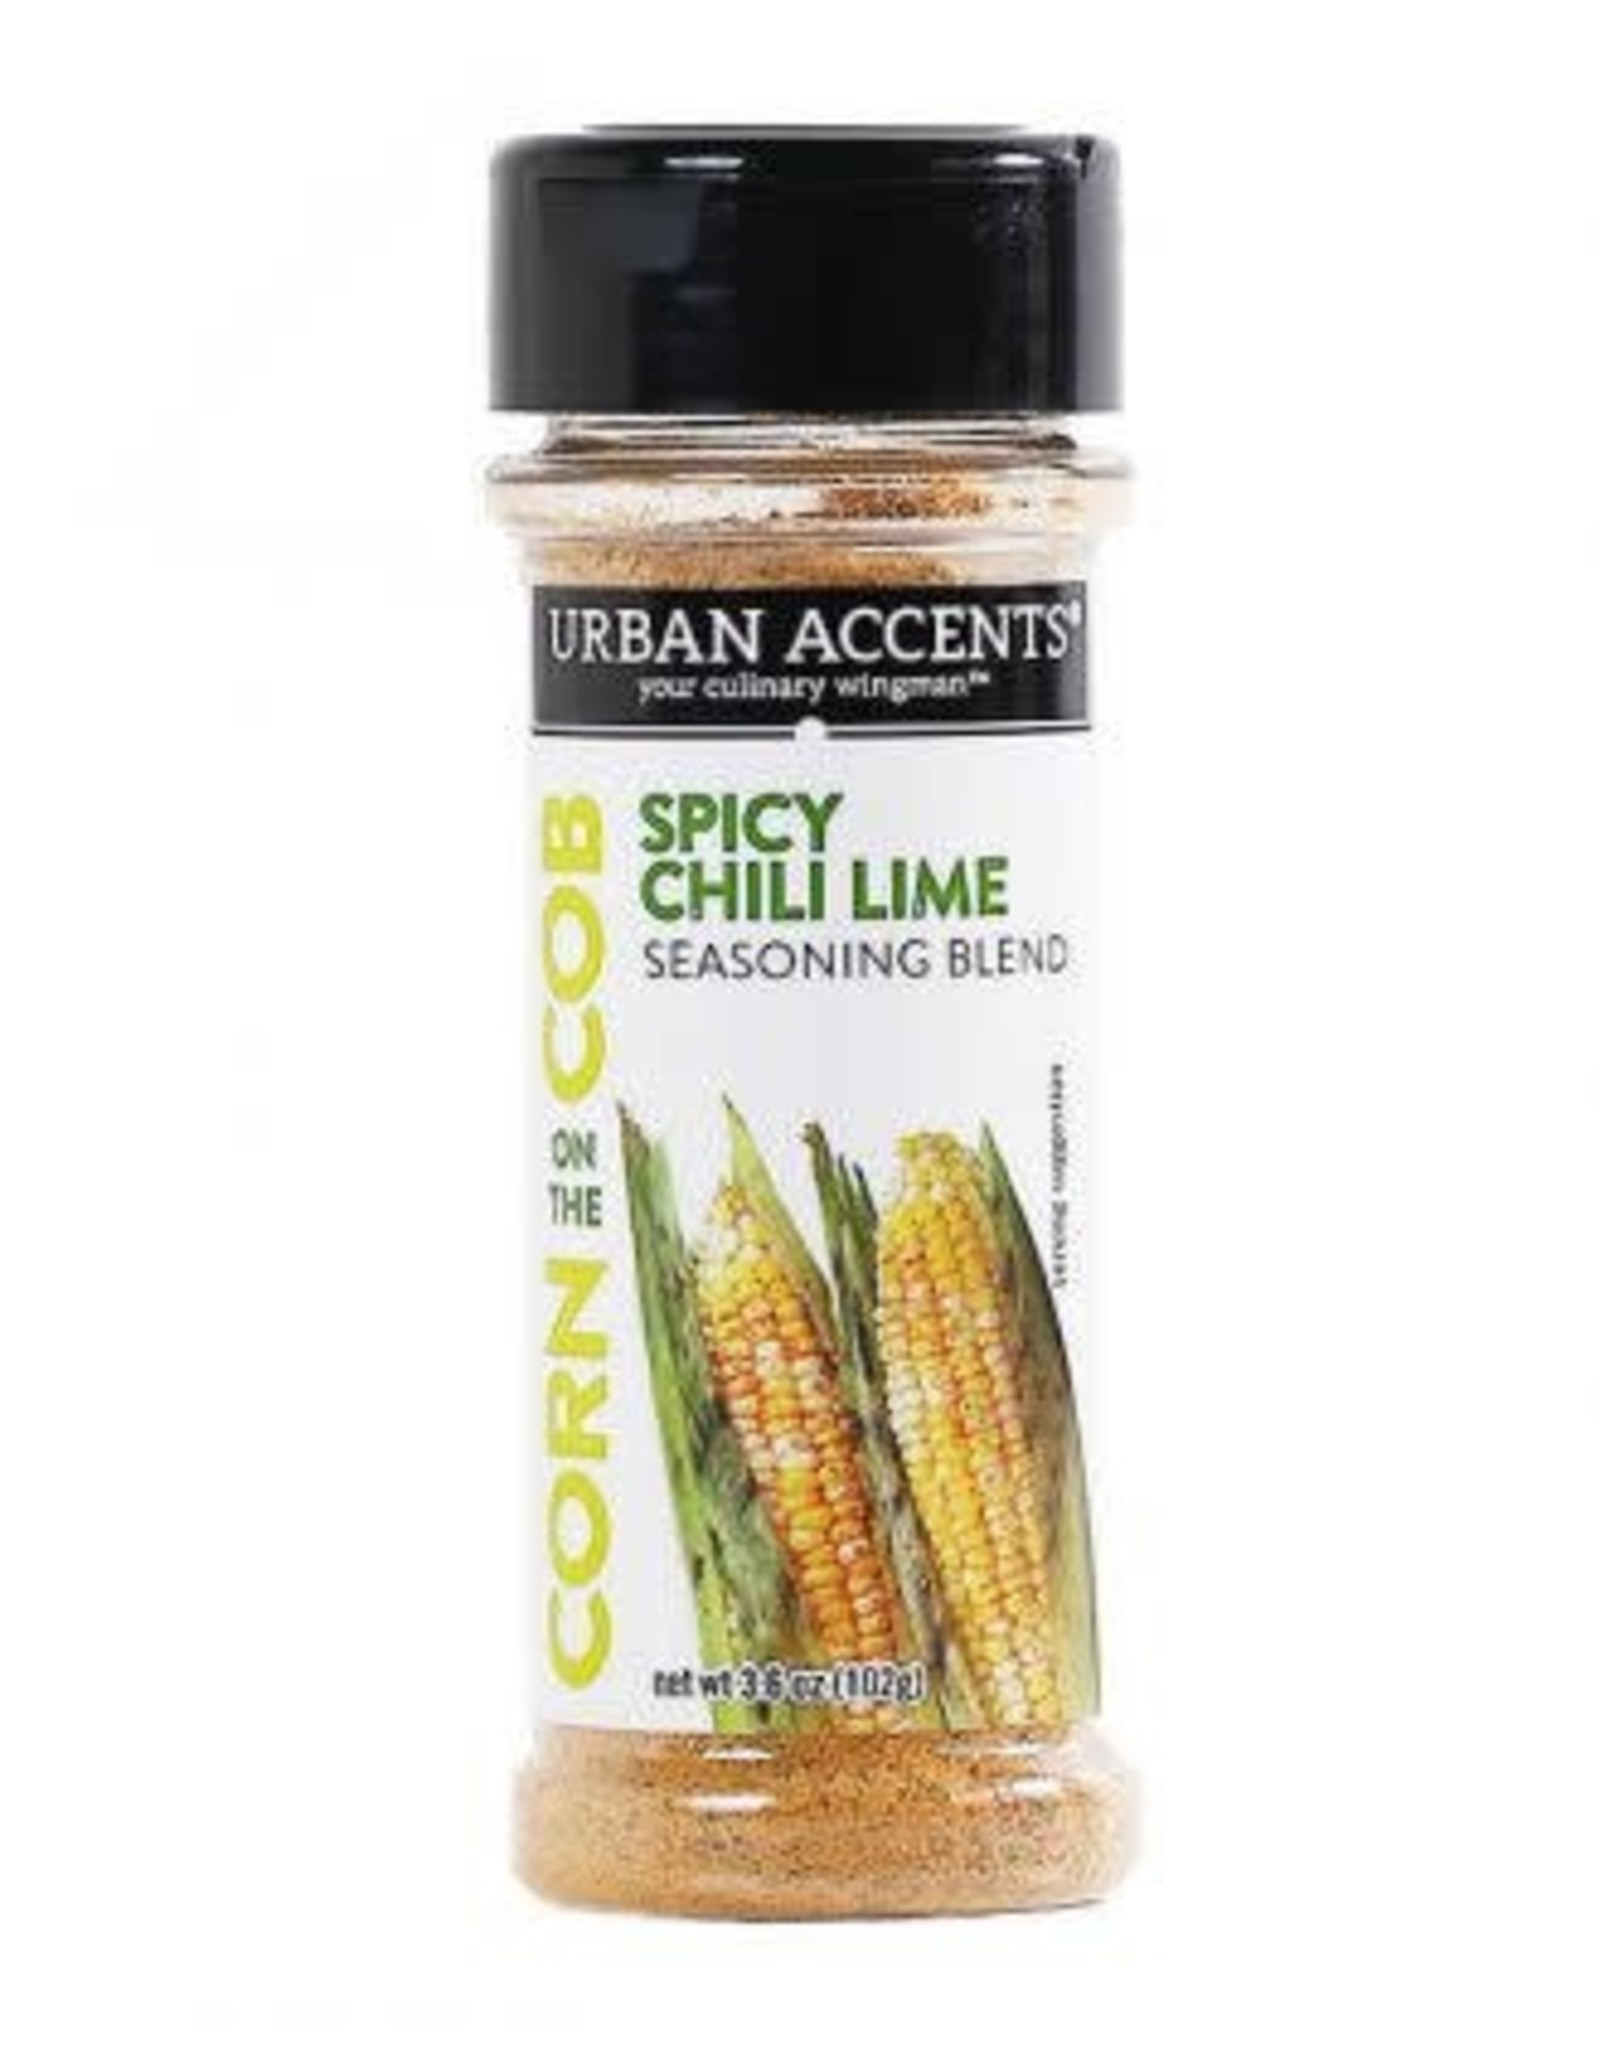 Urban Accents SPICY CHILI LIME SEASONING BLEND